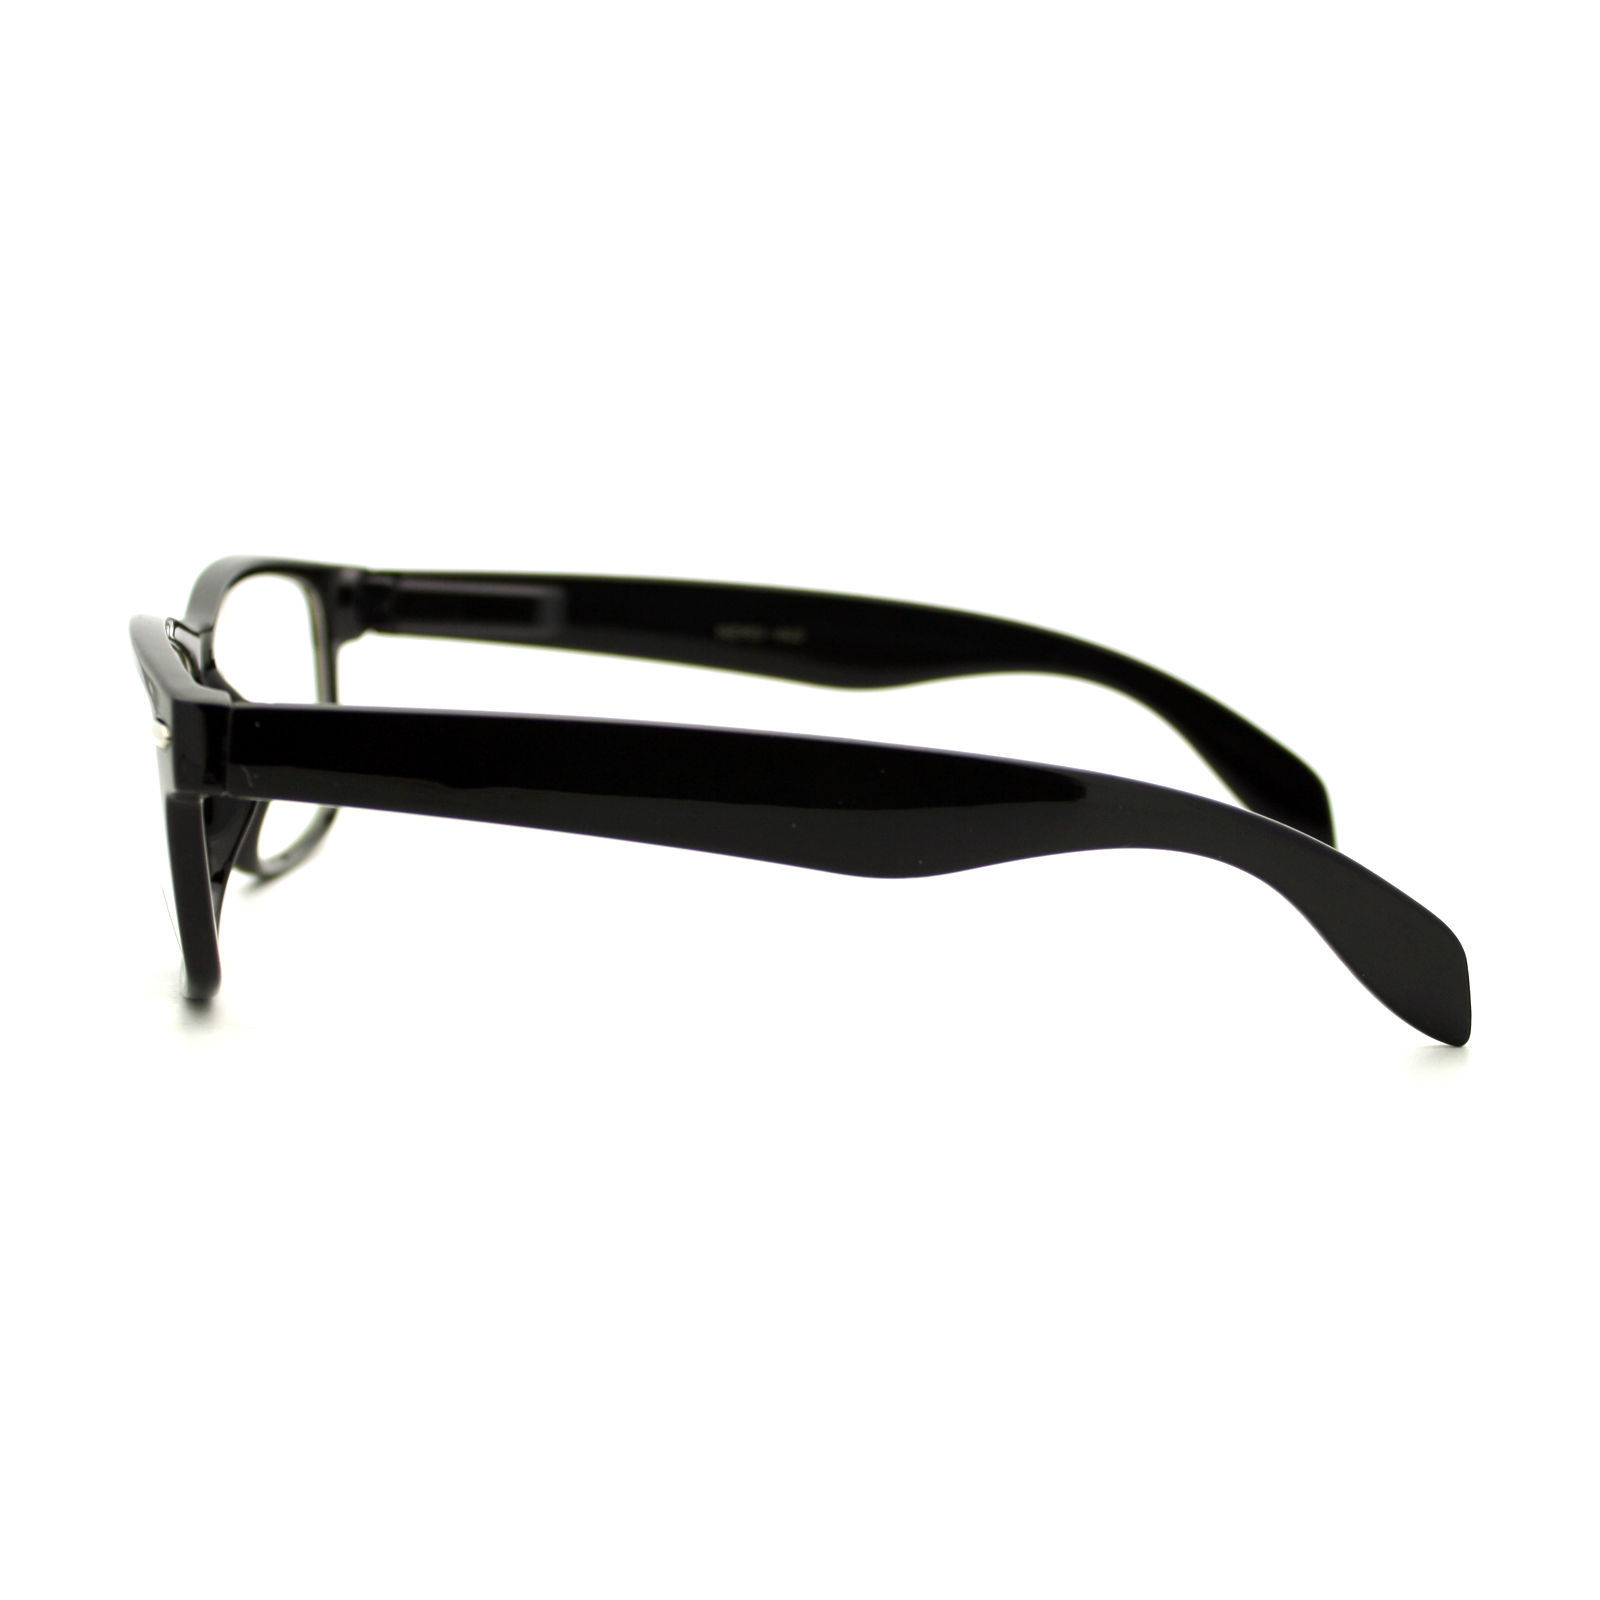 Designer Fashion Clear Lens Glasses Unisex Rectangular Horn Rim